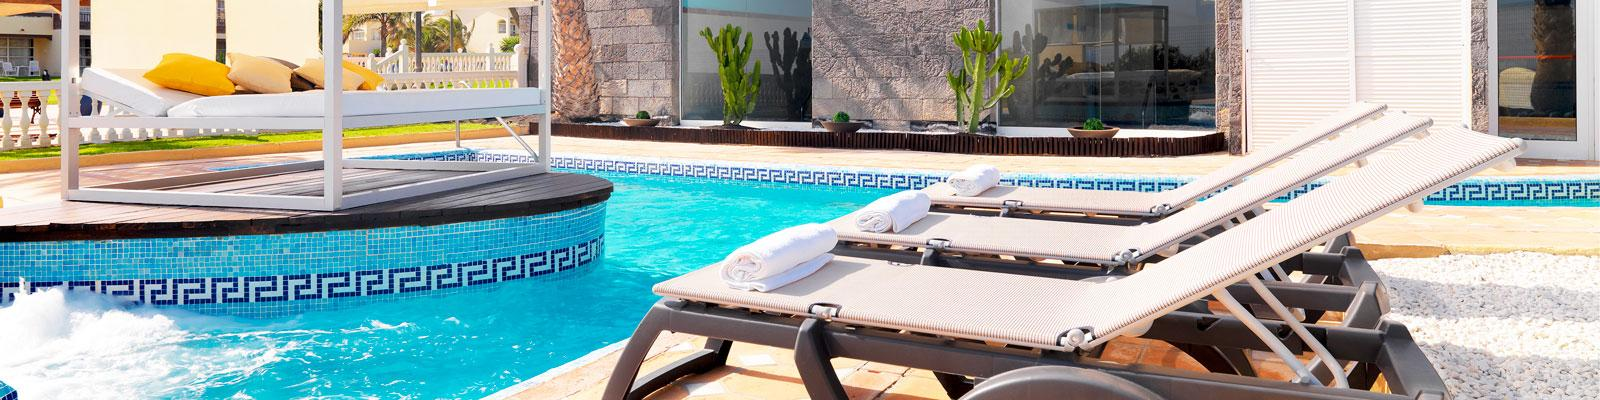 H10 Rubicon Palace - Family Hotel, Lanzarote